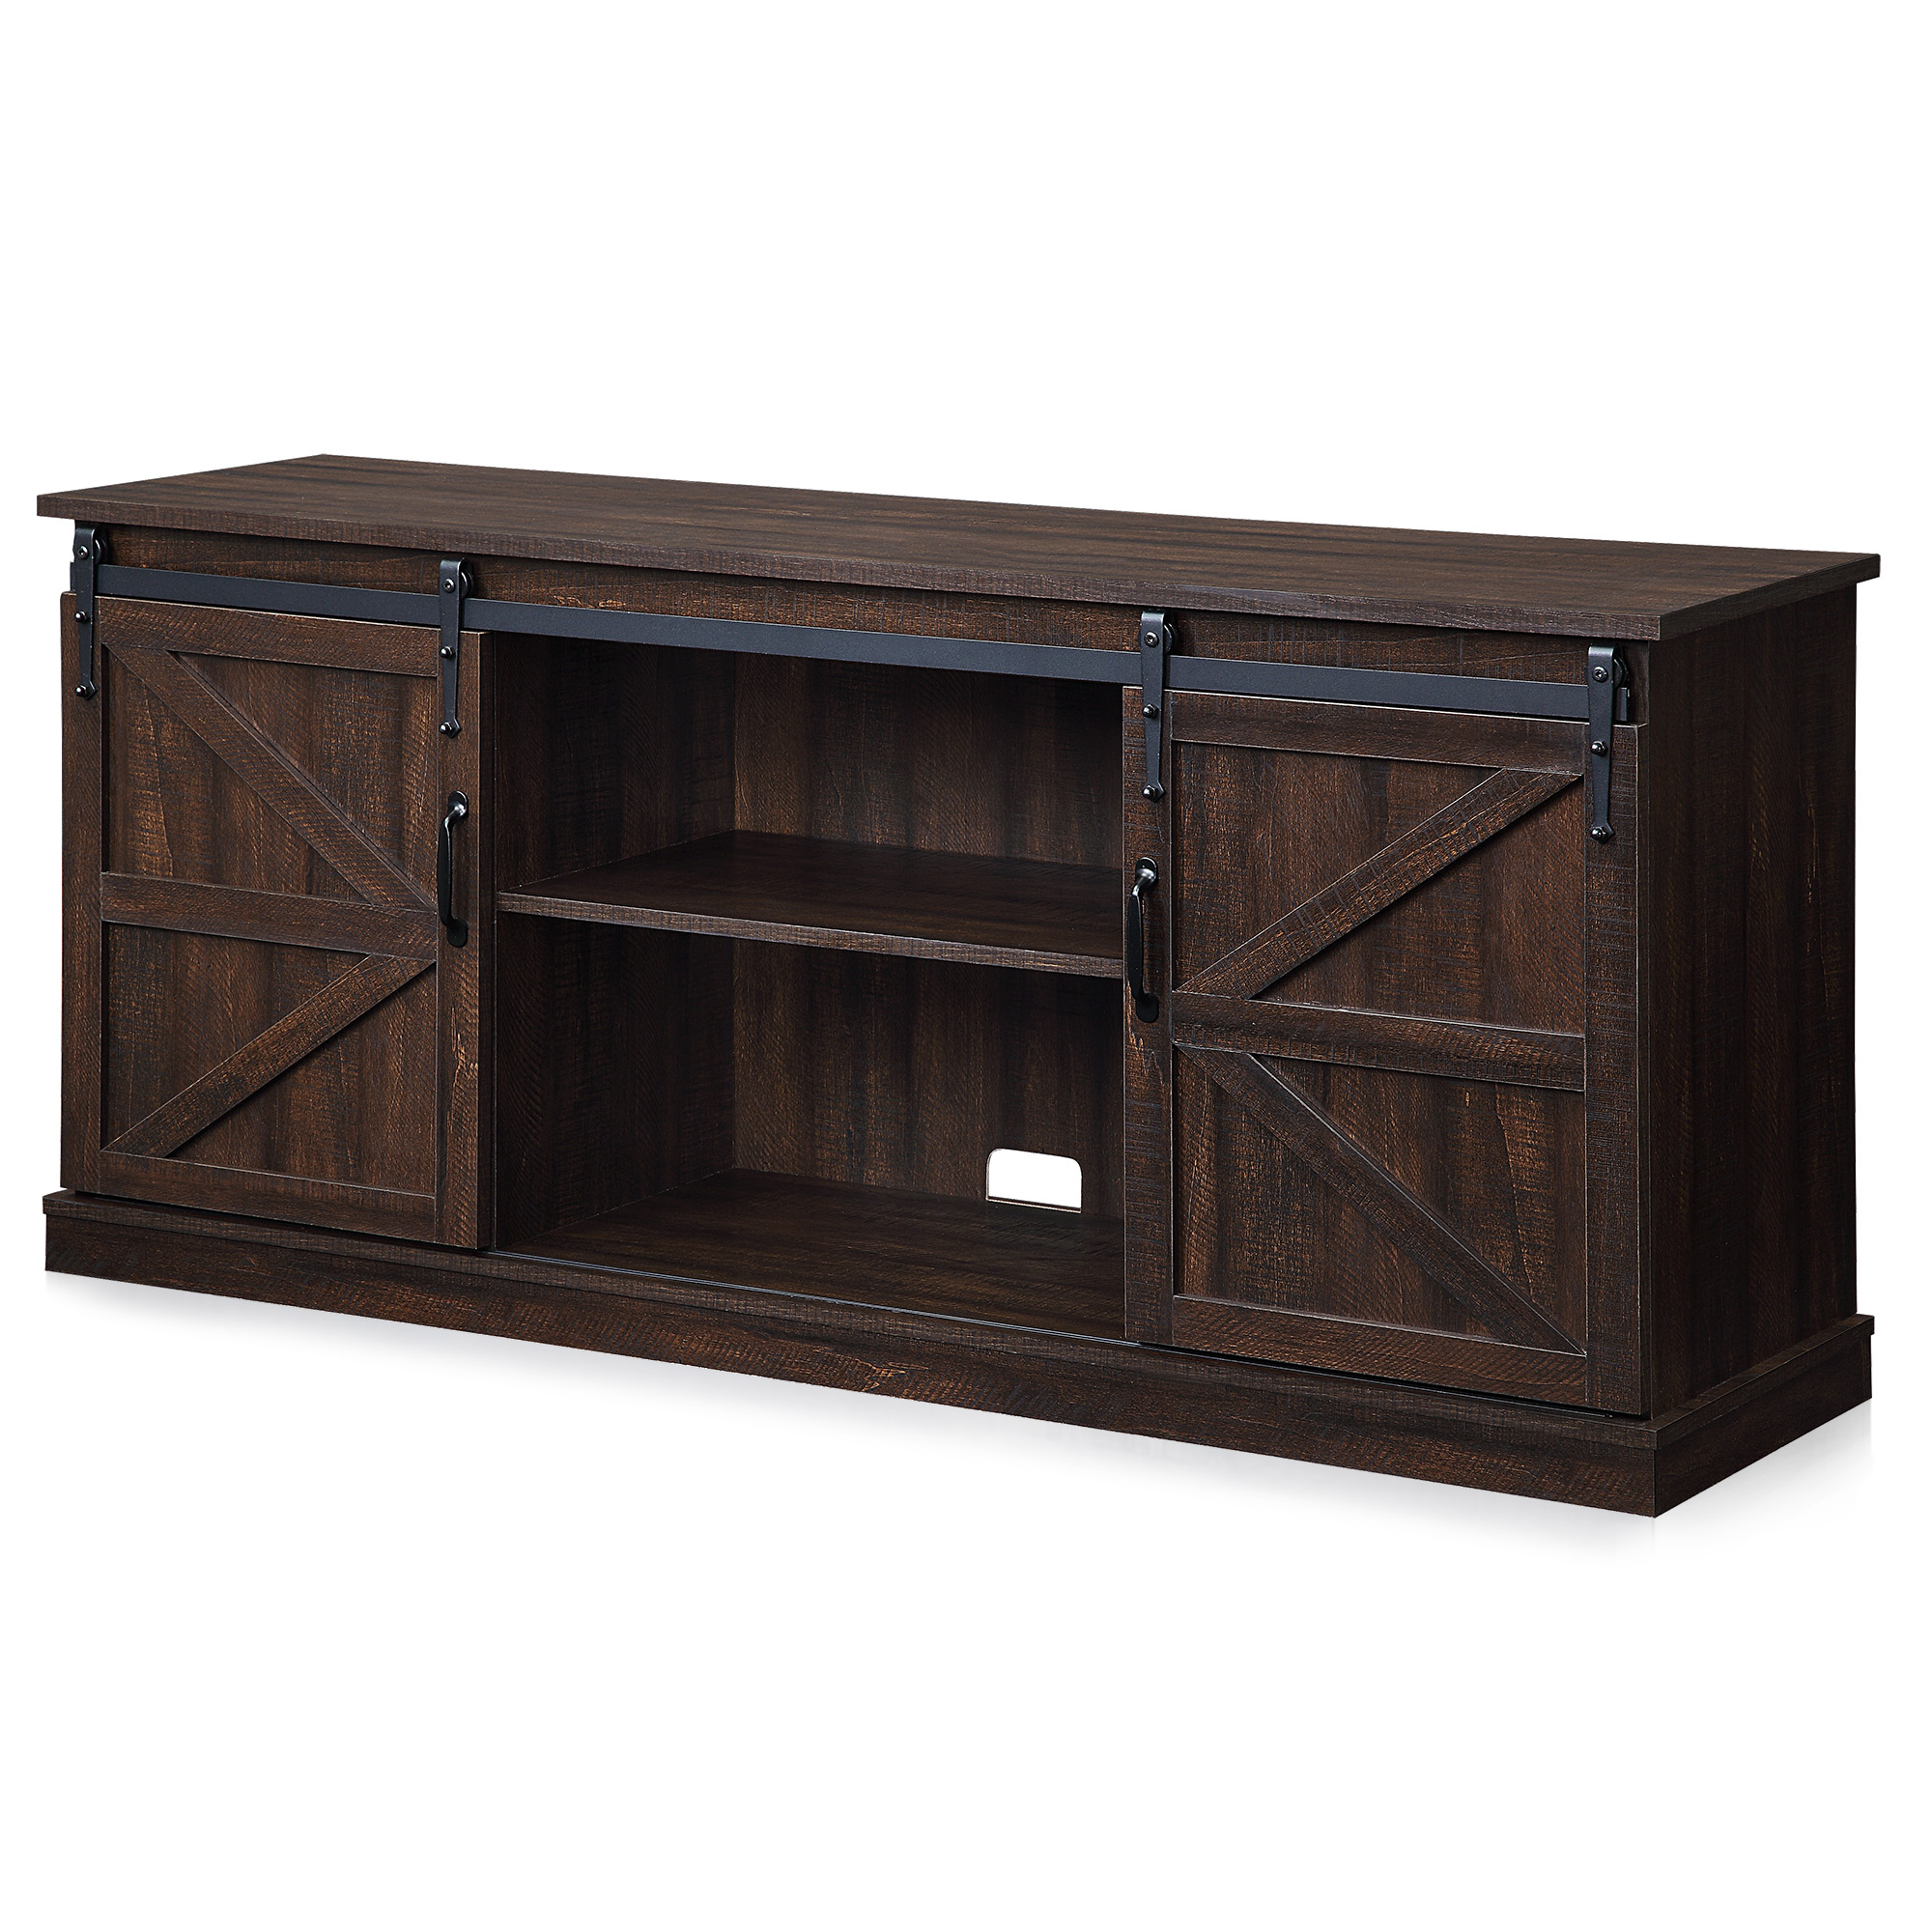 """Belleze Modern Farmhouse Style 58""""tv Stand W/sliding Barn Regarding Jaxpety 58"""" Farmhouse Sliding Barn Door Tv Stands (View 8 of 20)"""